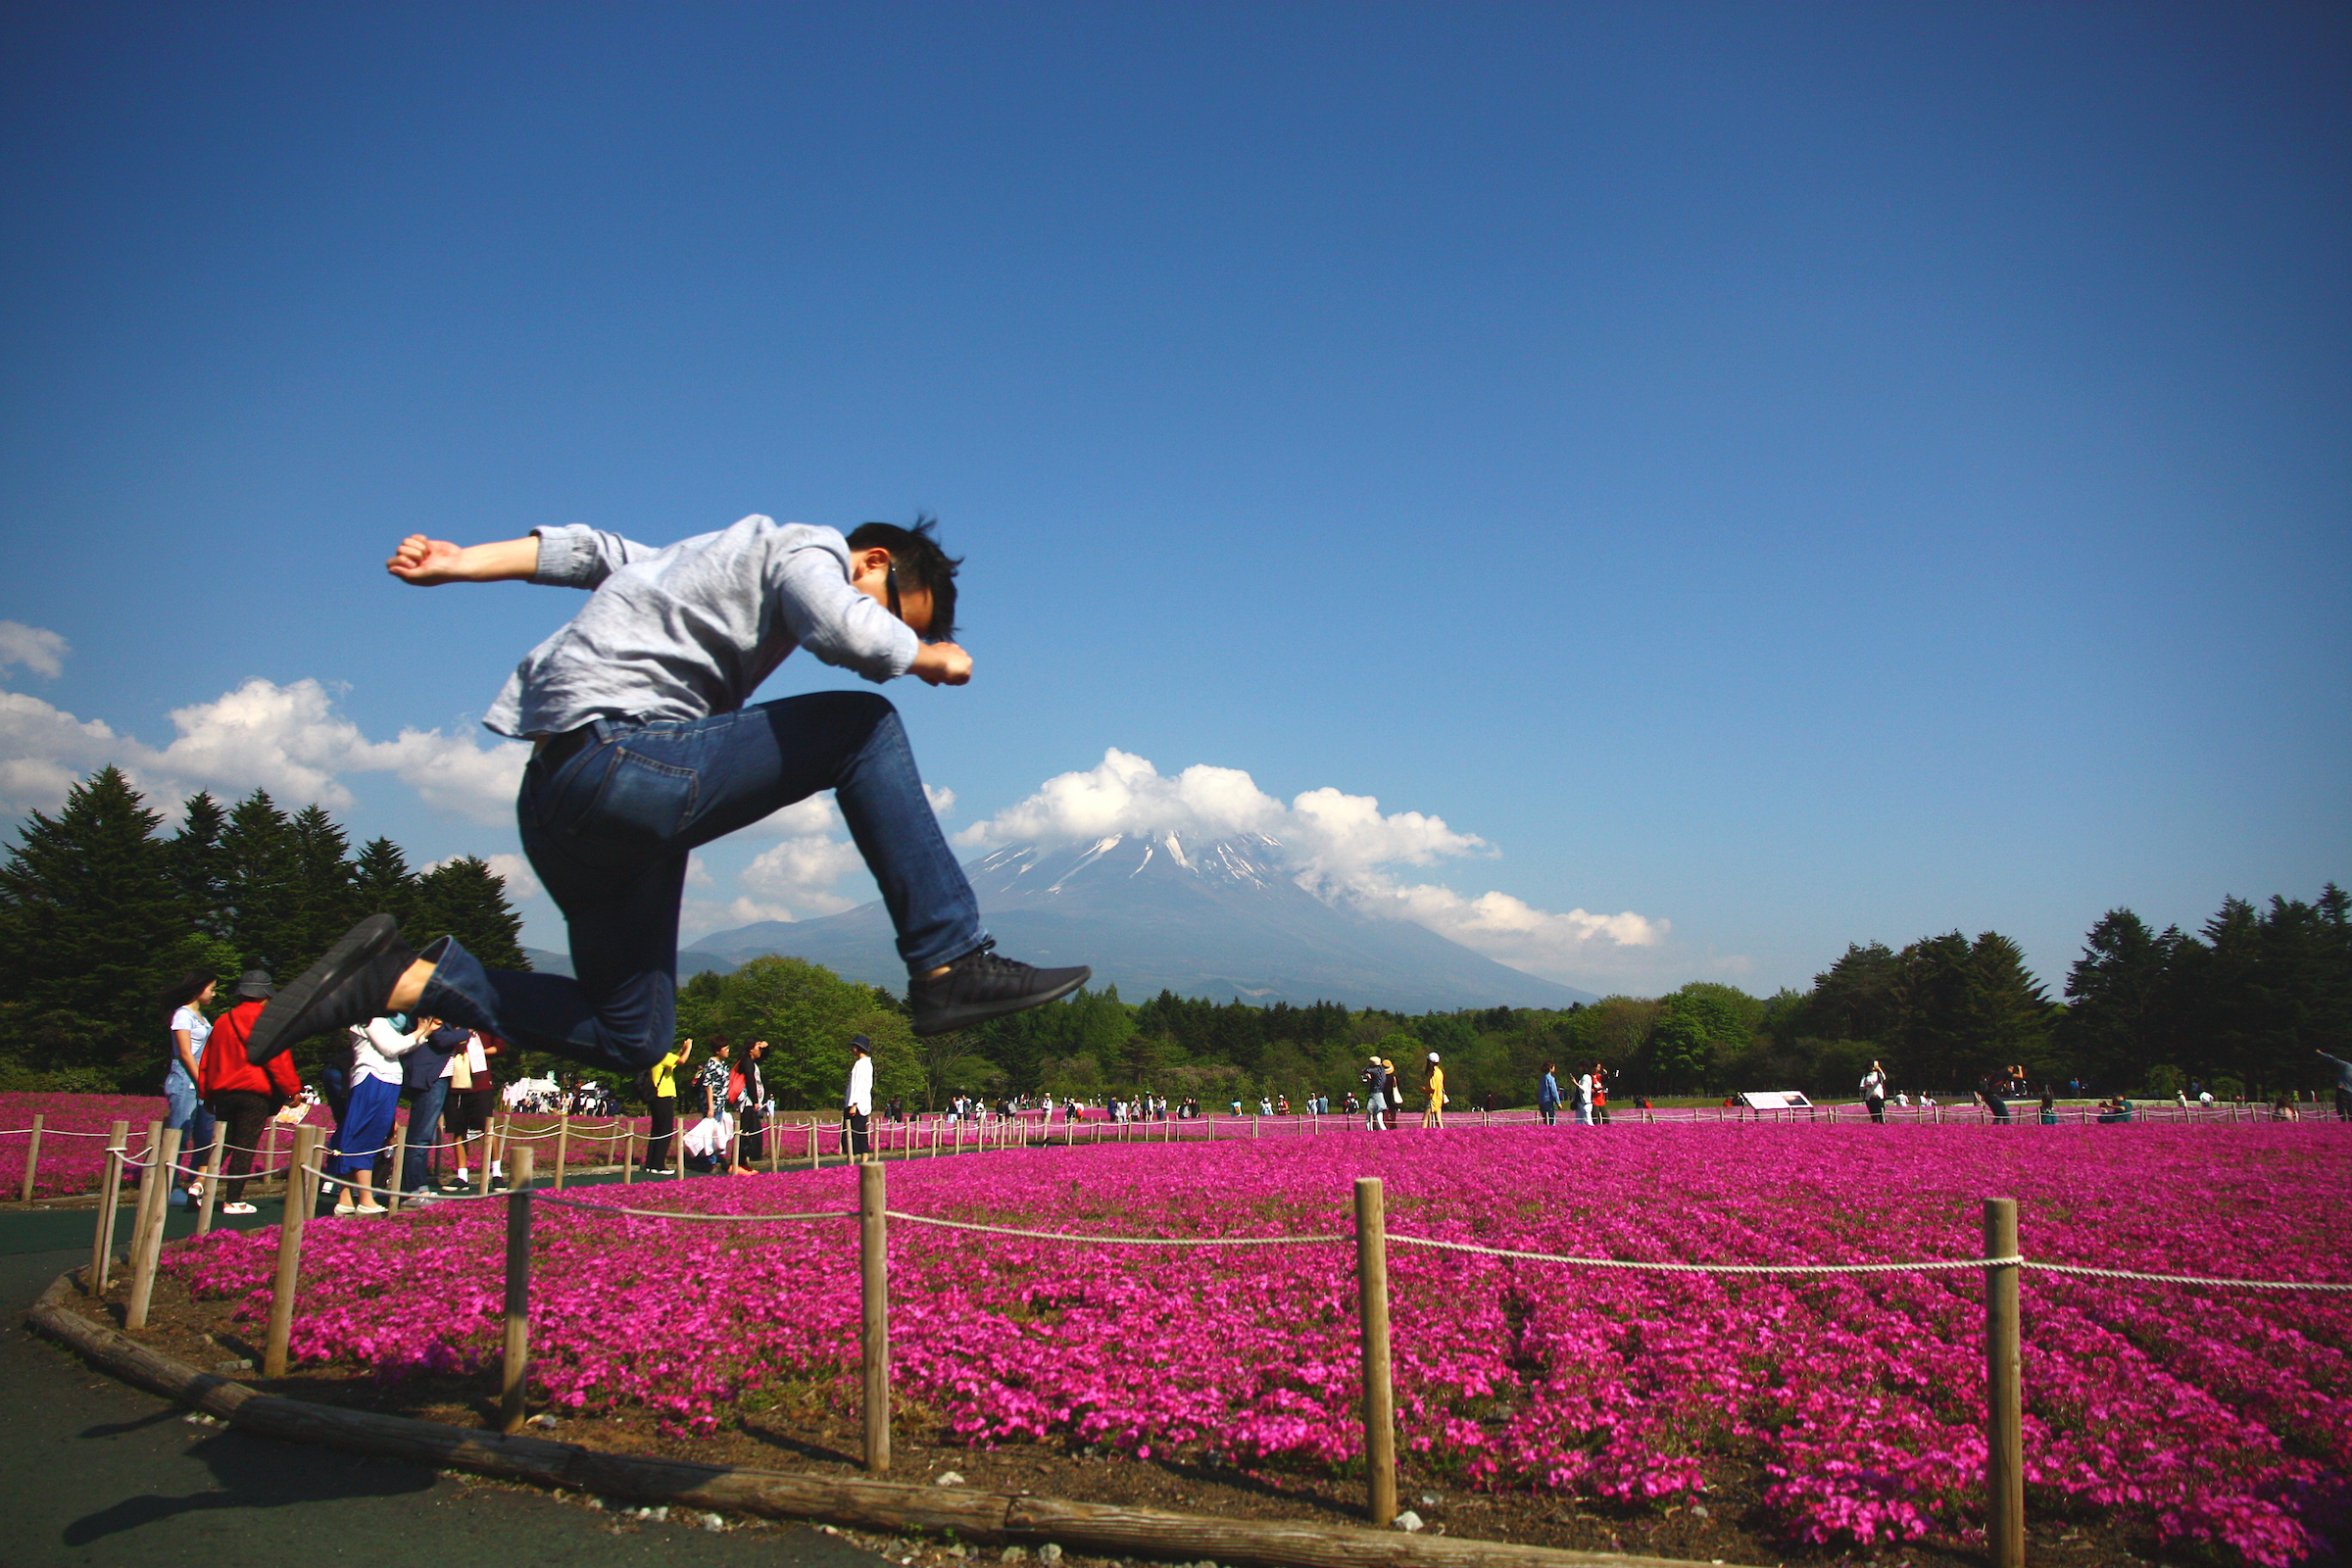 From Tokyo to Mount Fuji: What to Do If You're Not Into Climbing or Hiking (Map Included)